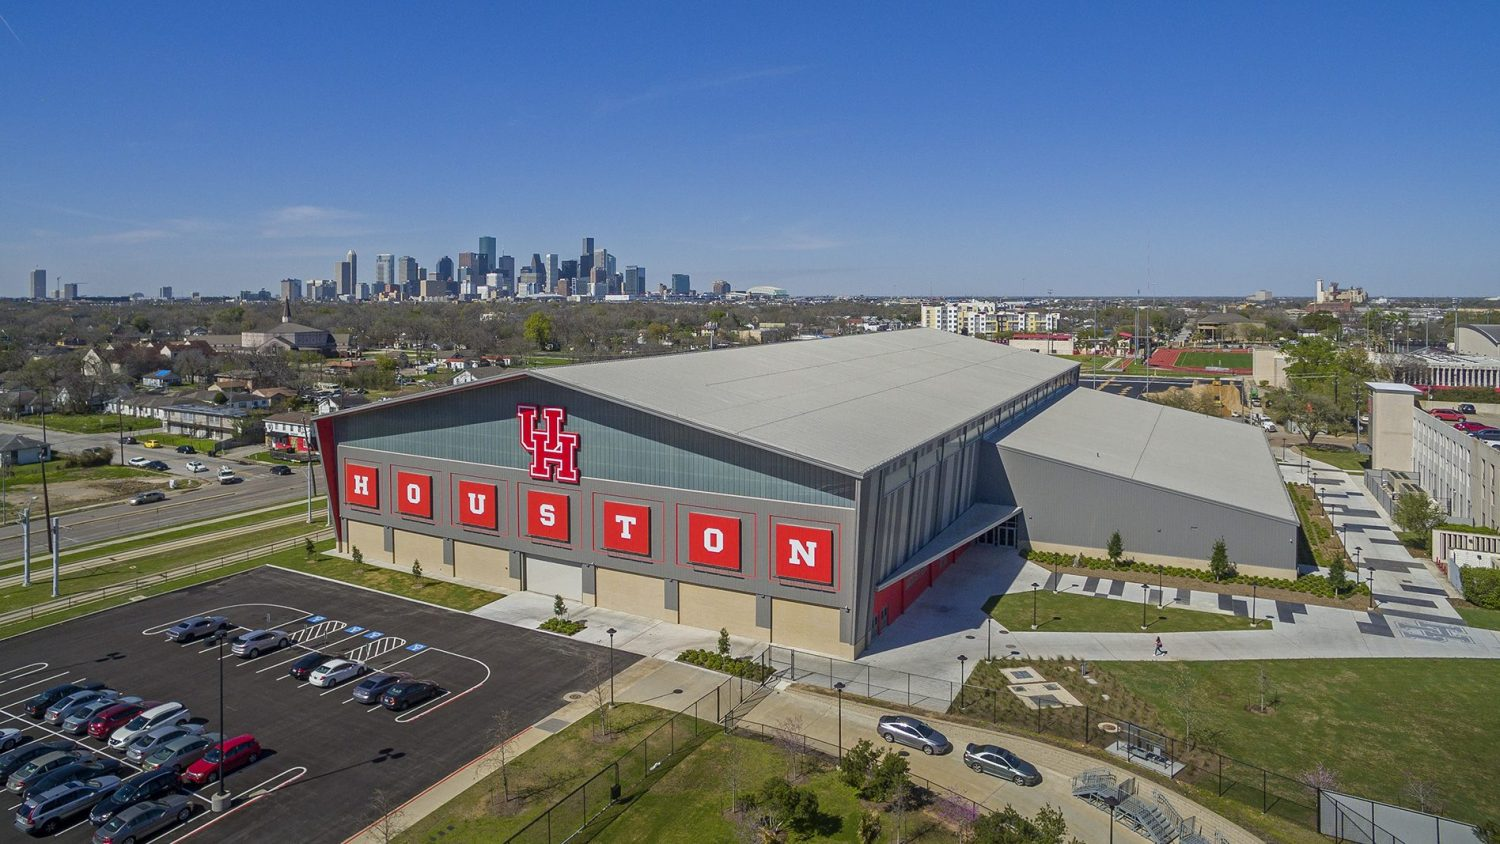 University of Houston Indoor Football Facility - Aerial view